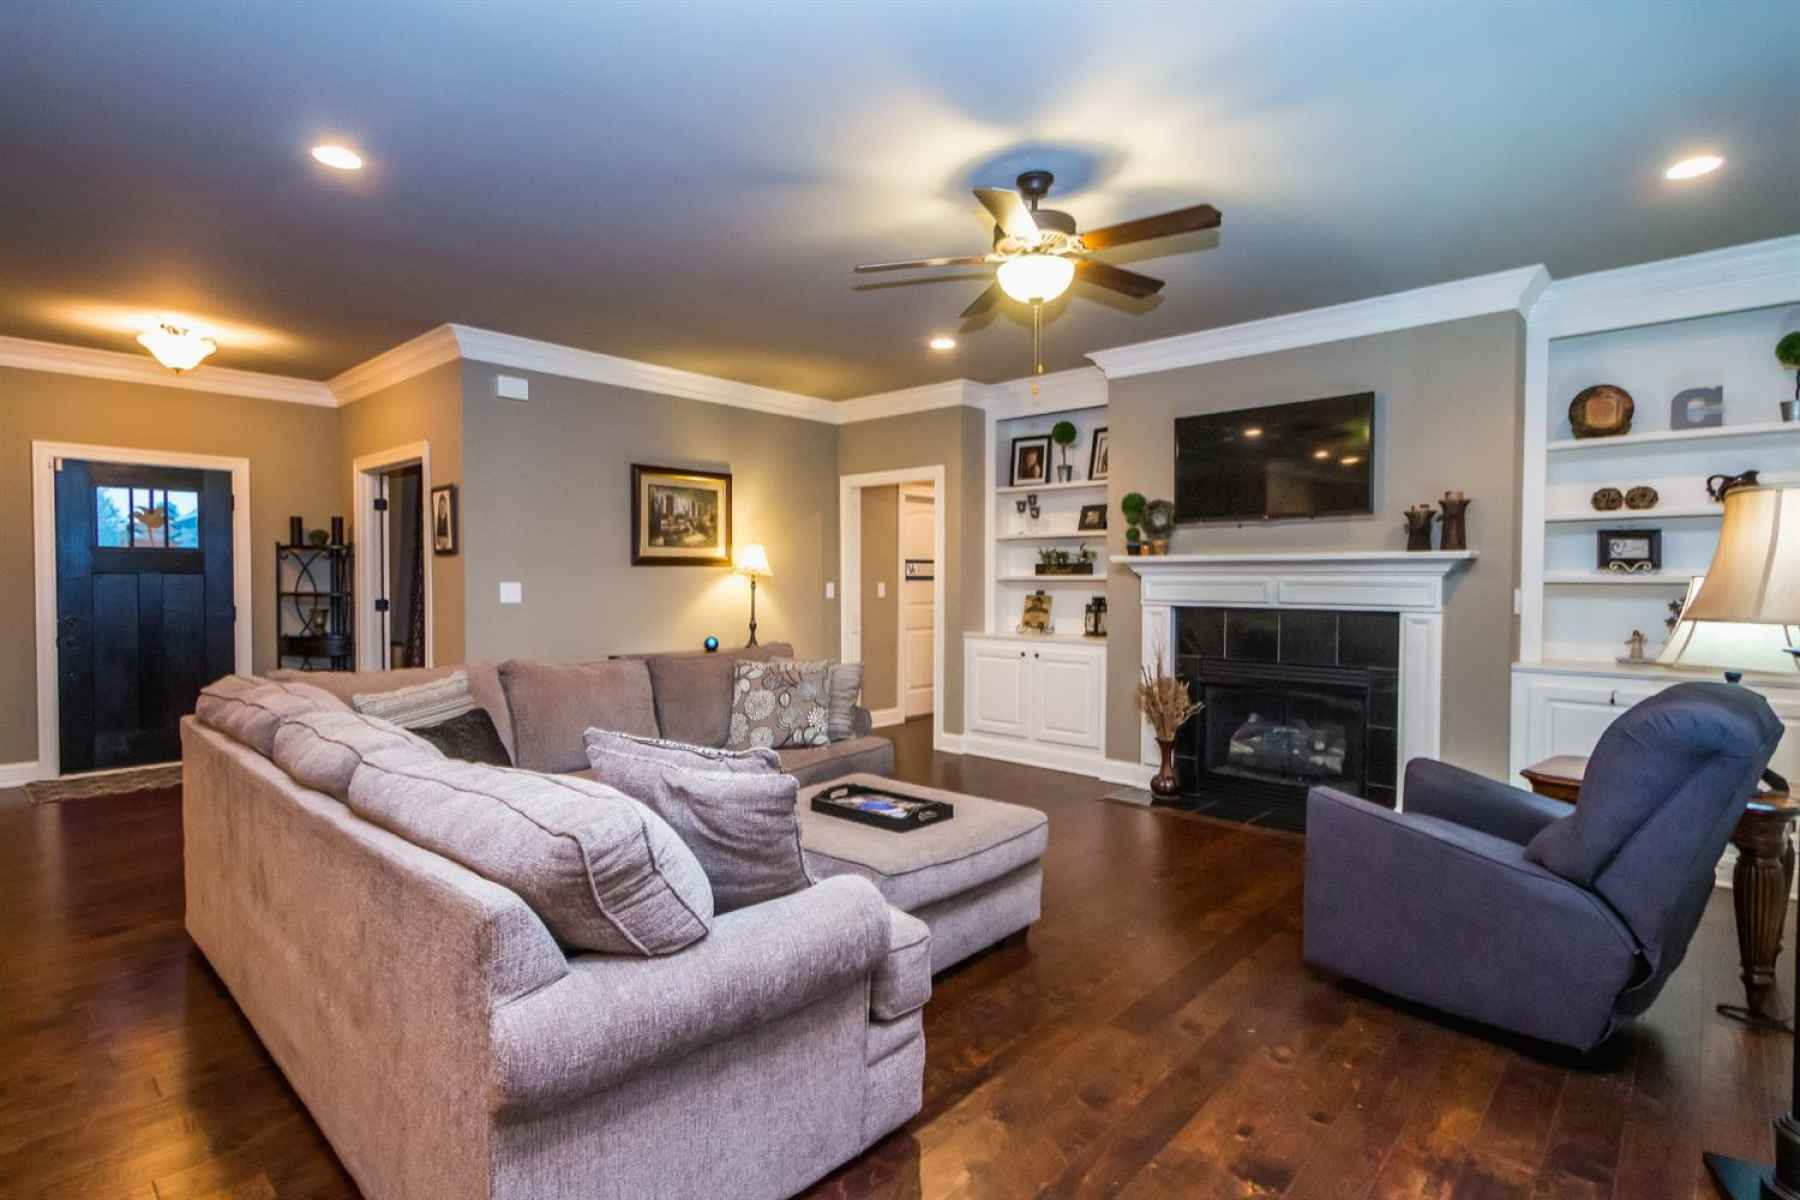 The great room features a gas-log fireplace, built-in bookcases, a ceiling fan, & crown molding.